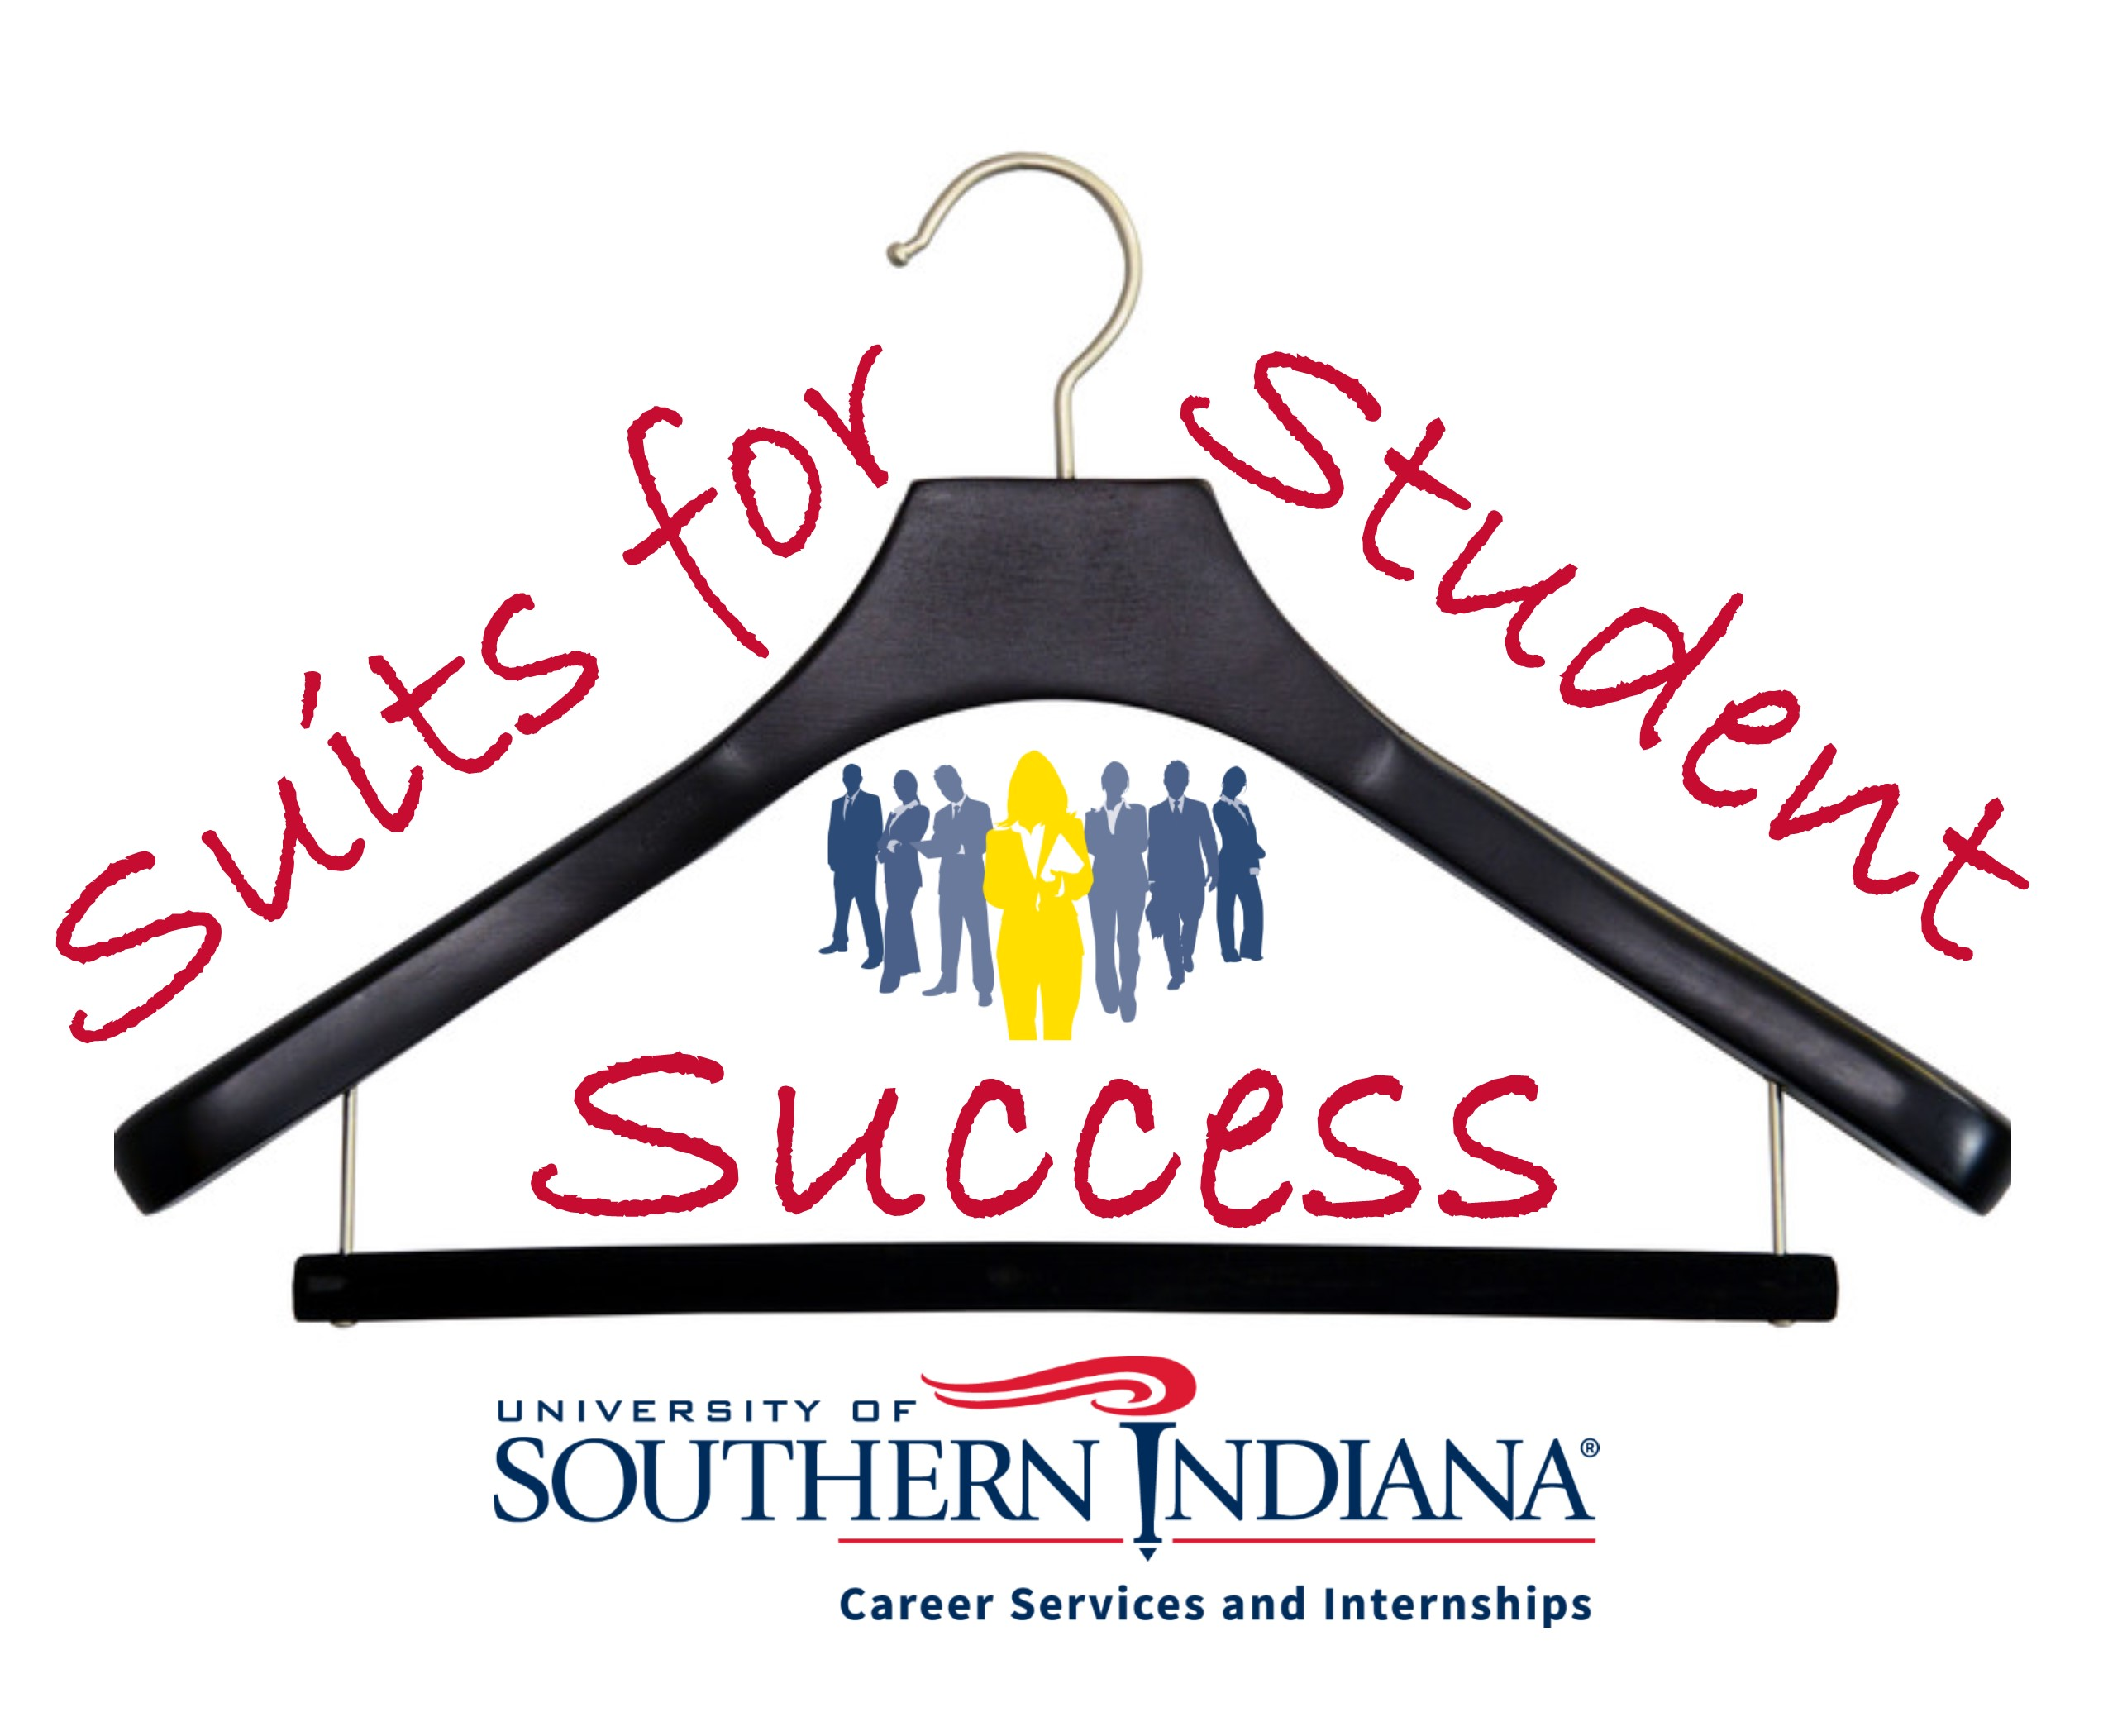 Suits for Student Success - University of Southern Indiana